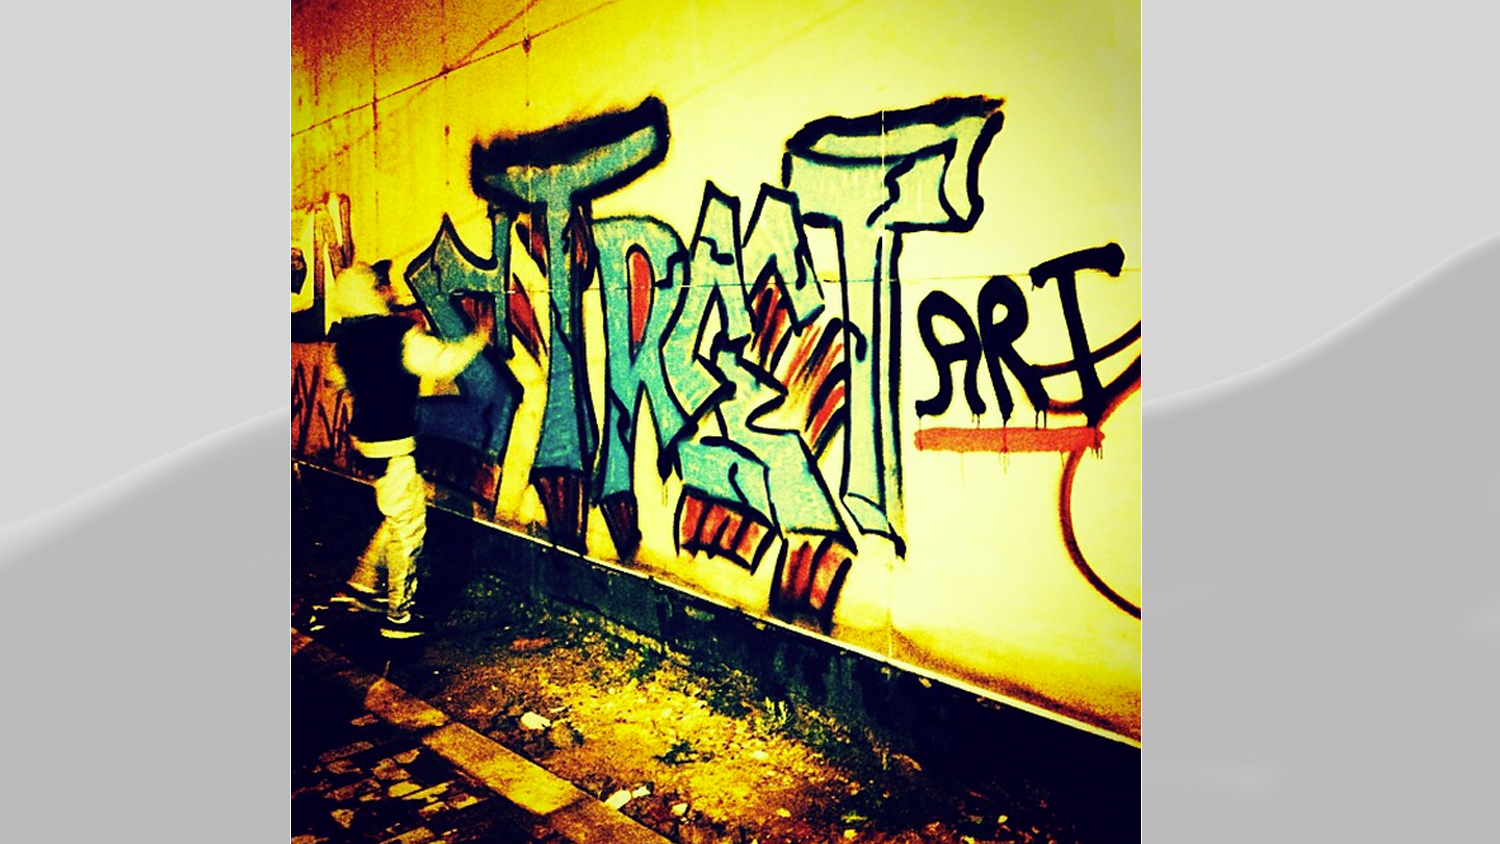 PHOTO: Justin Bieber posted this image of graffiti to his Instagram account Oct. 31, 2013.